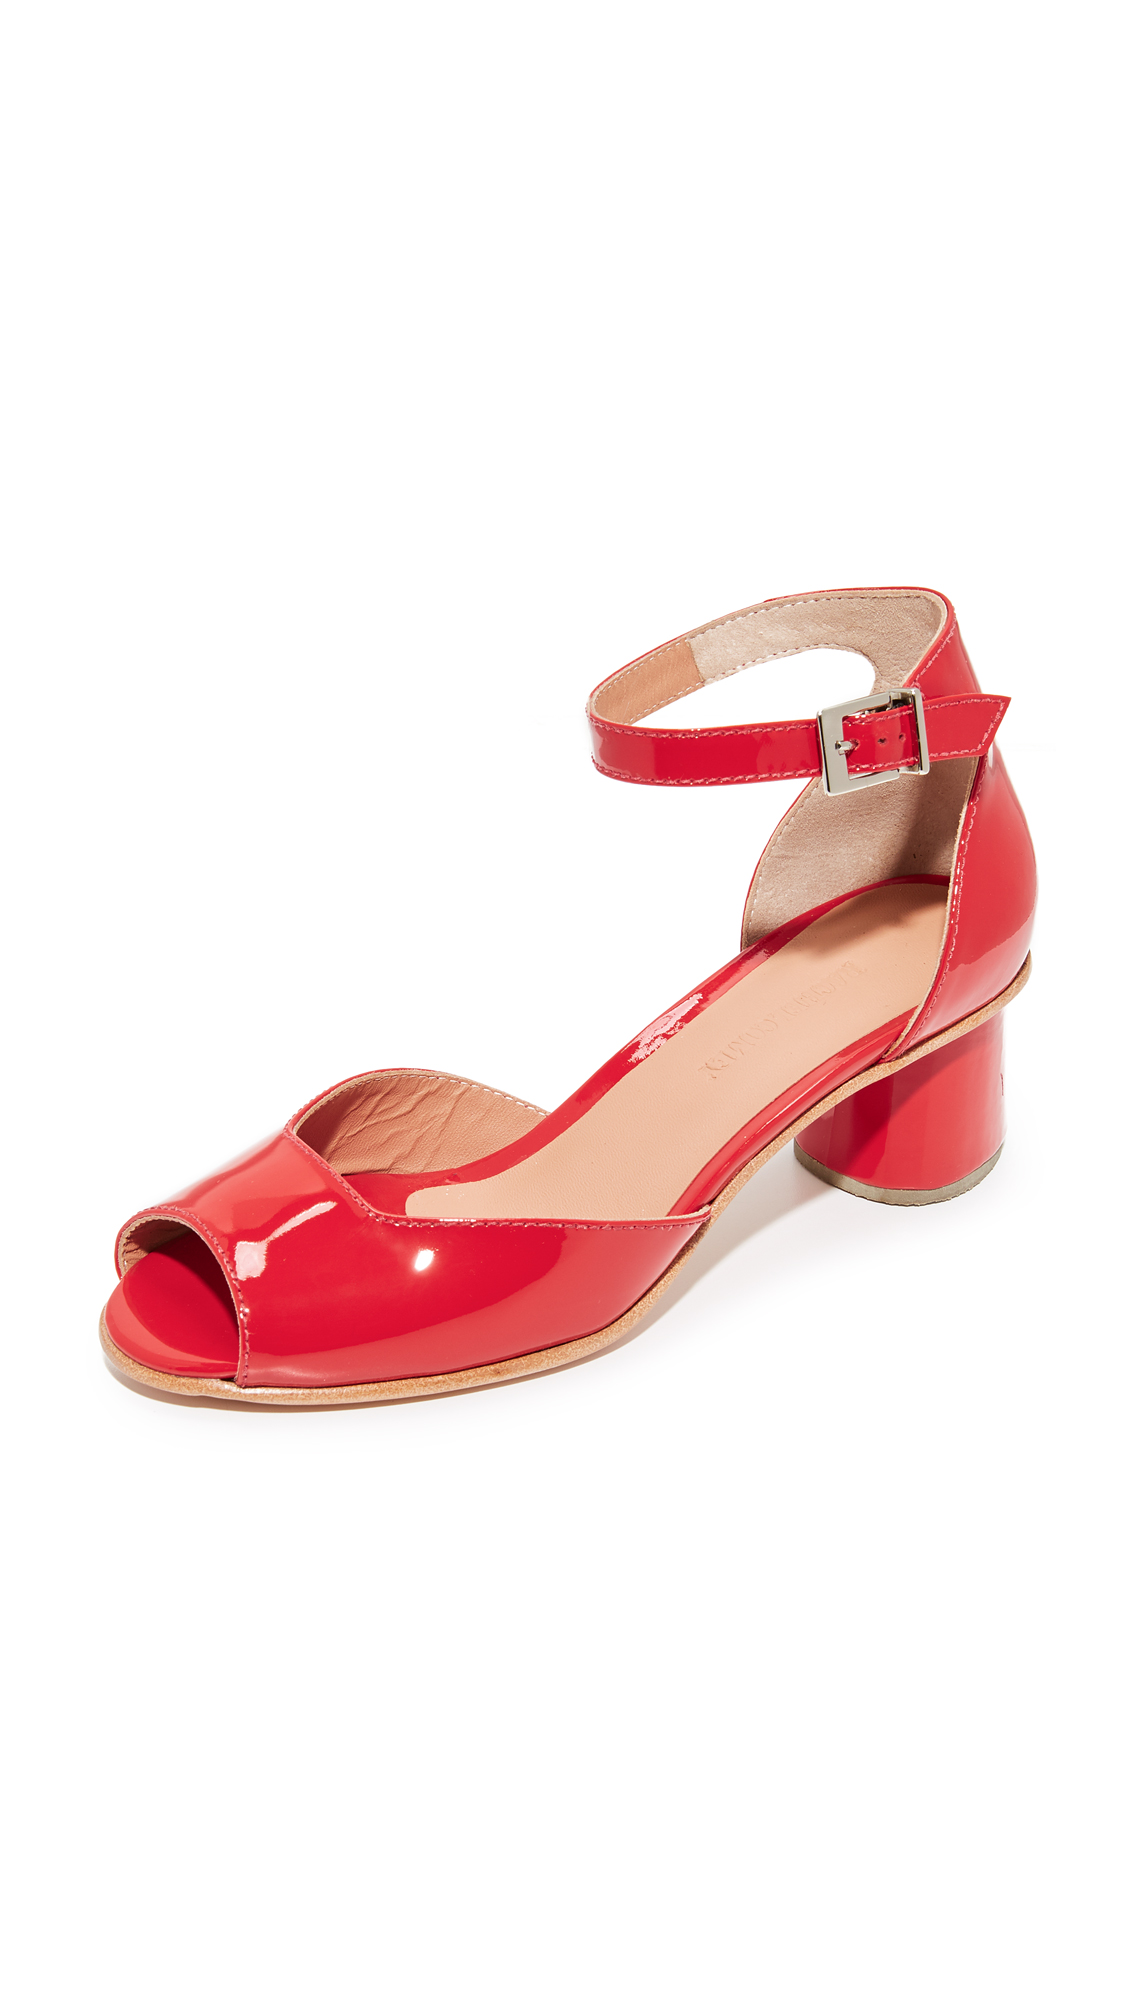 Rachel Comey Bodie City Sandals - Vermillion